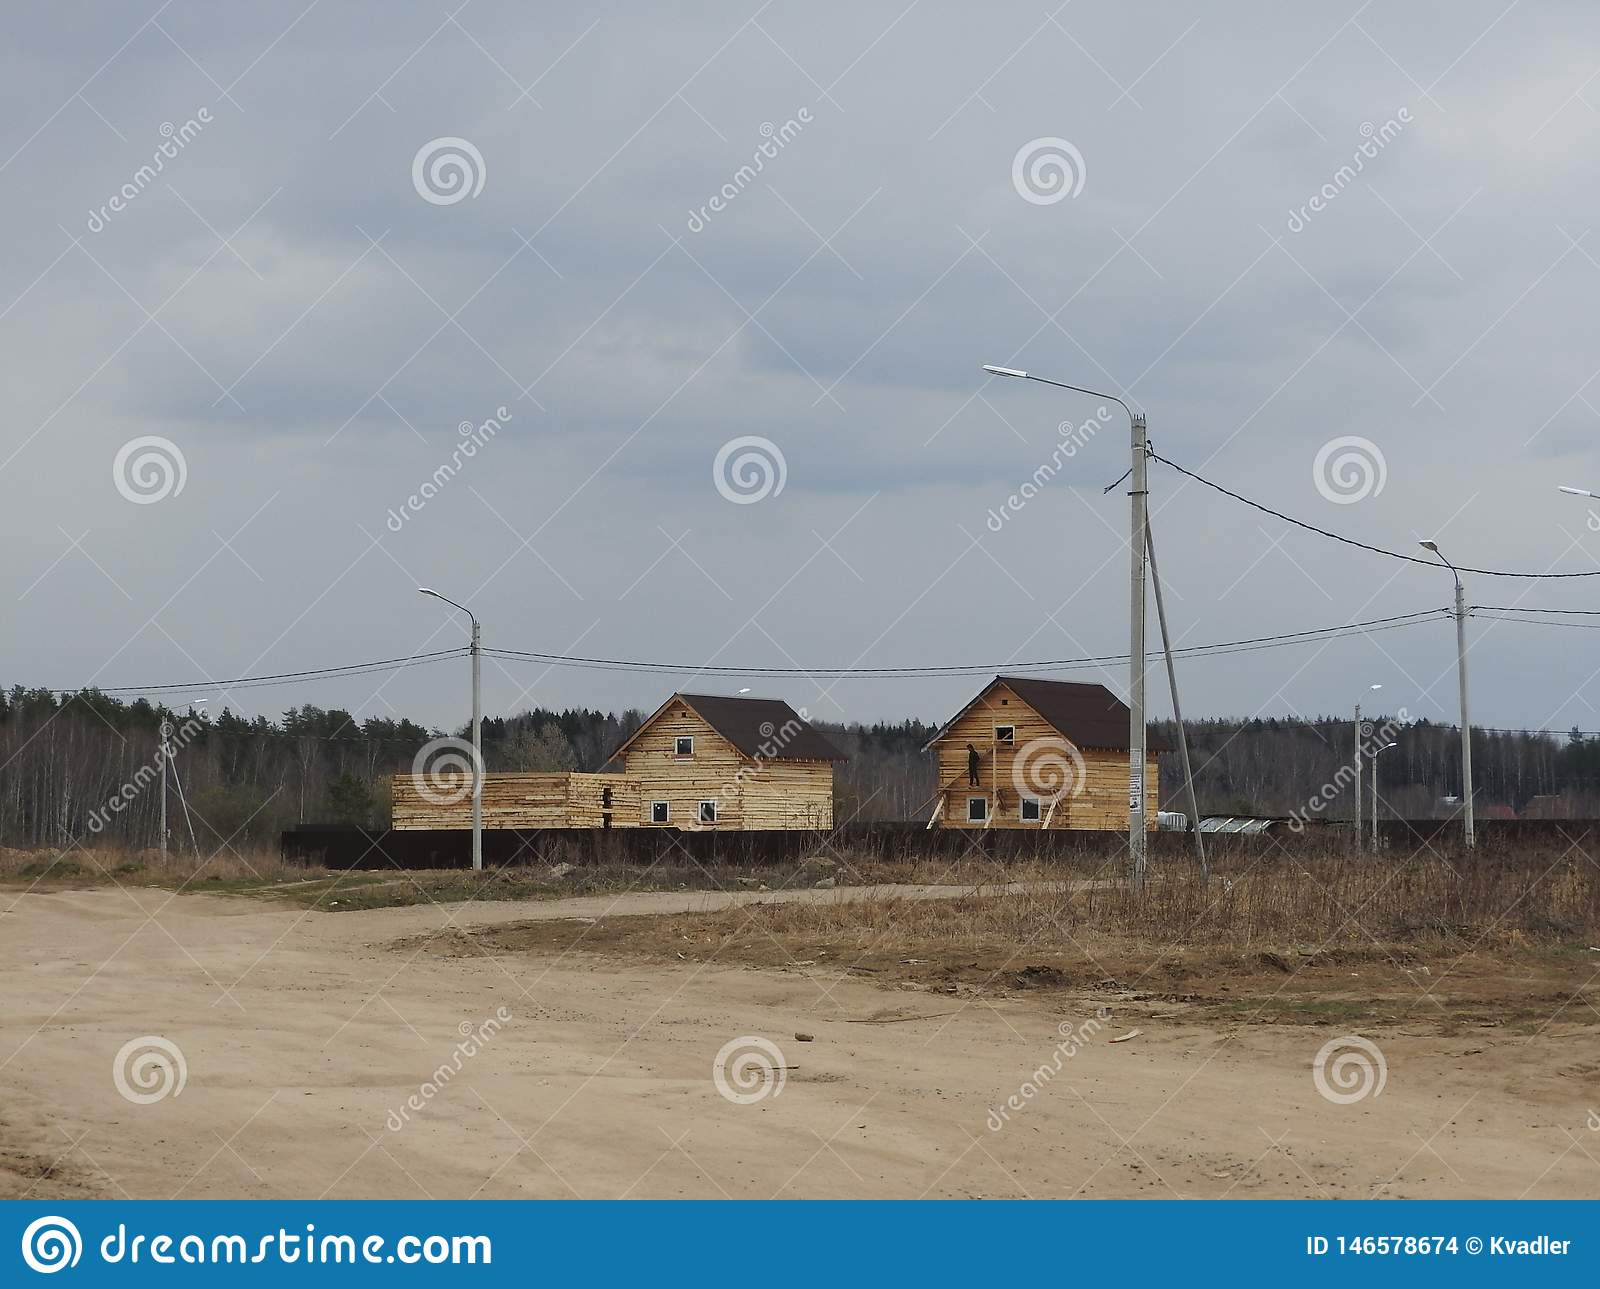 Construction of a house made of laminated veneer lumber. The frame of the house. Cottage made of laminated wood. Erection of the